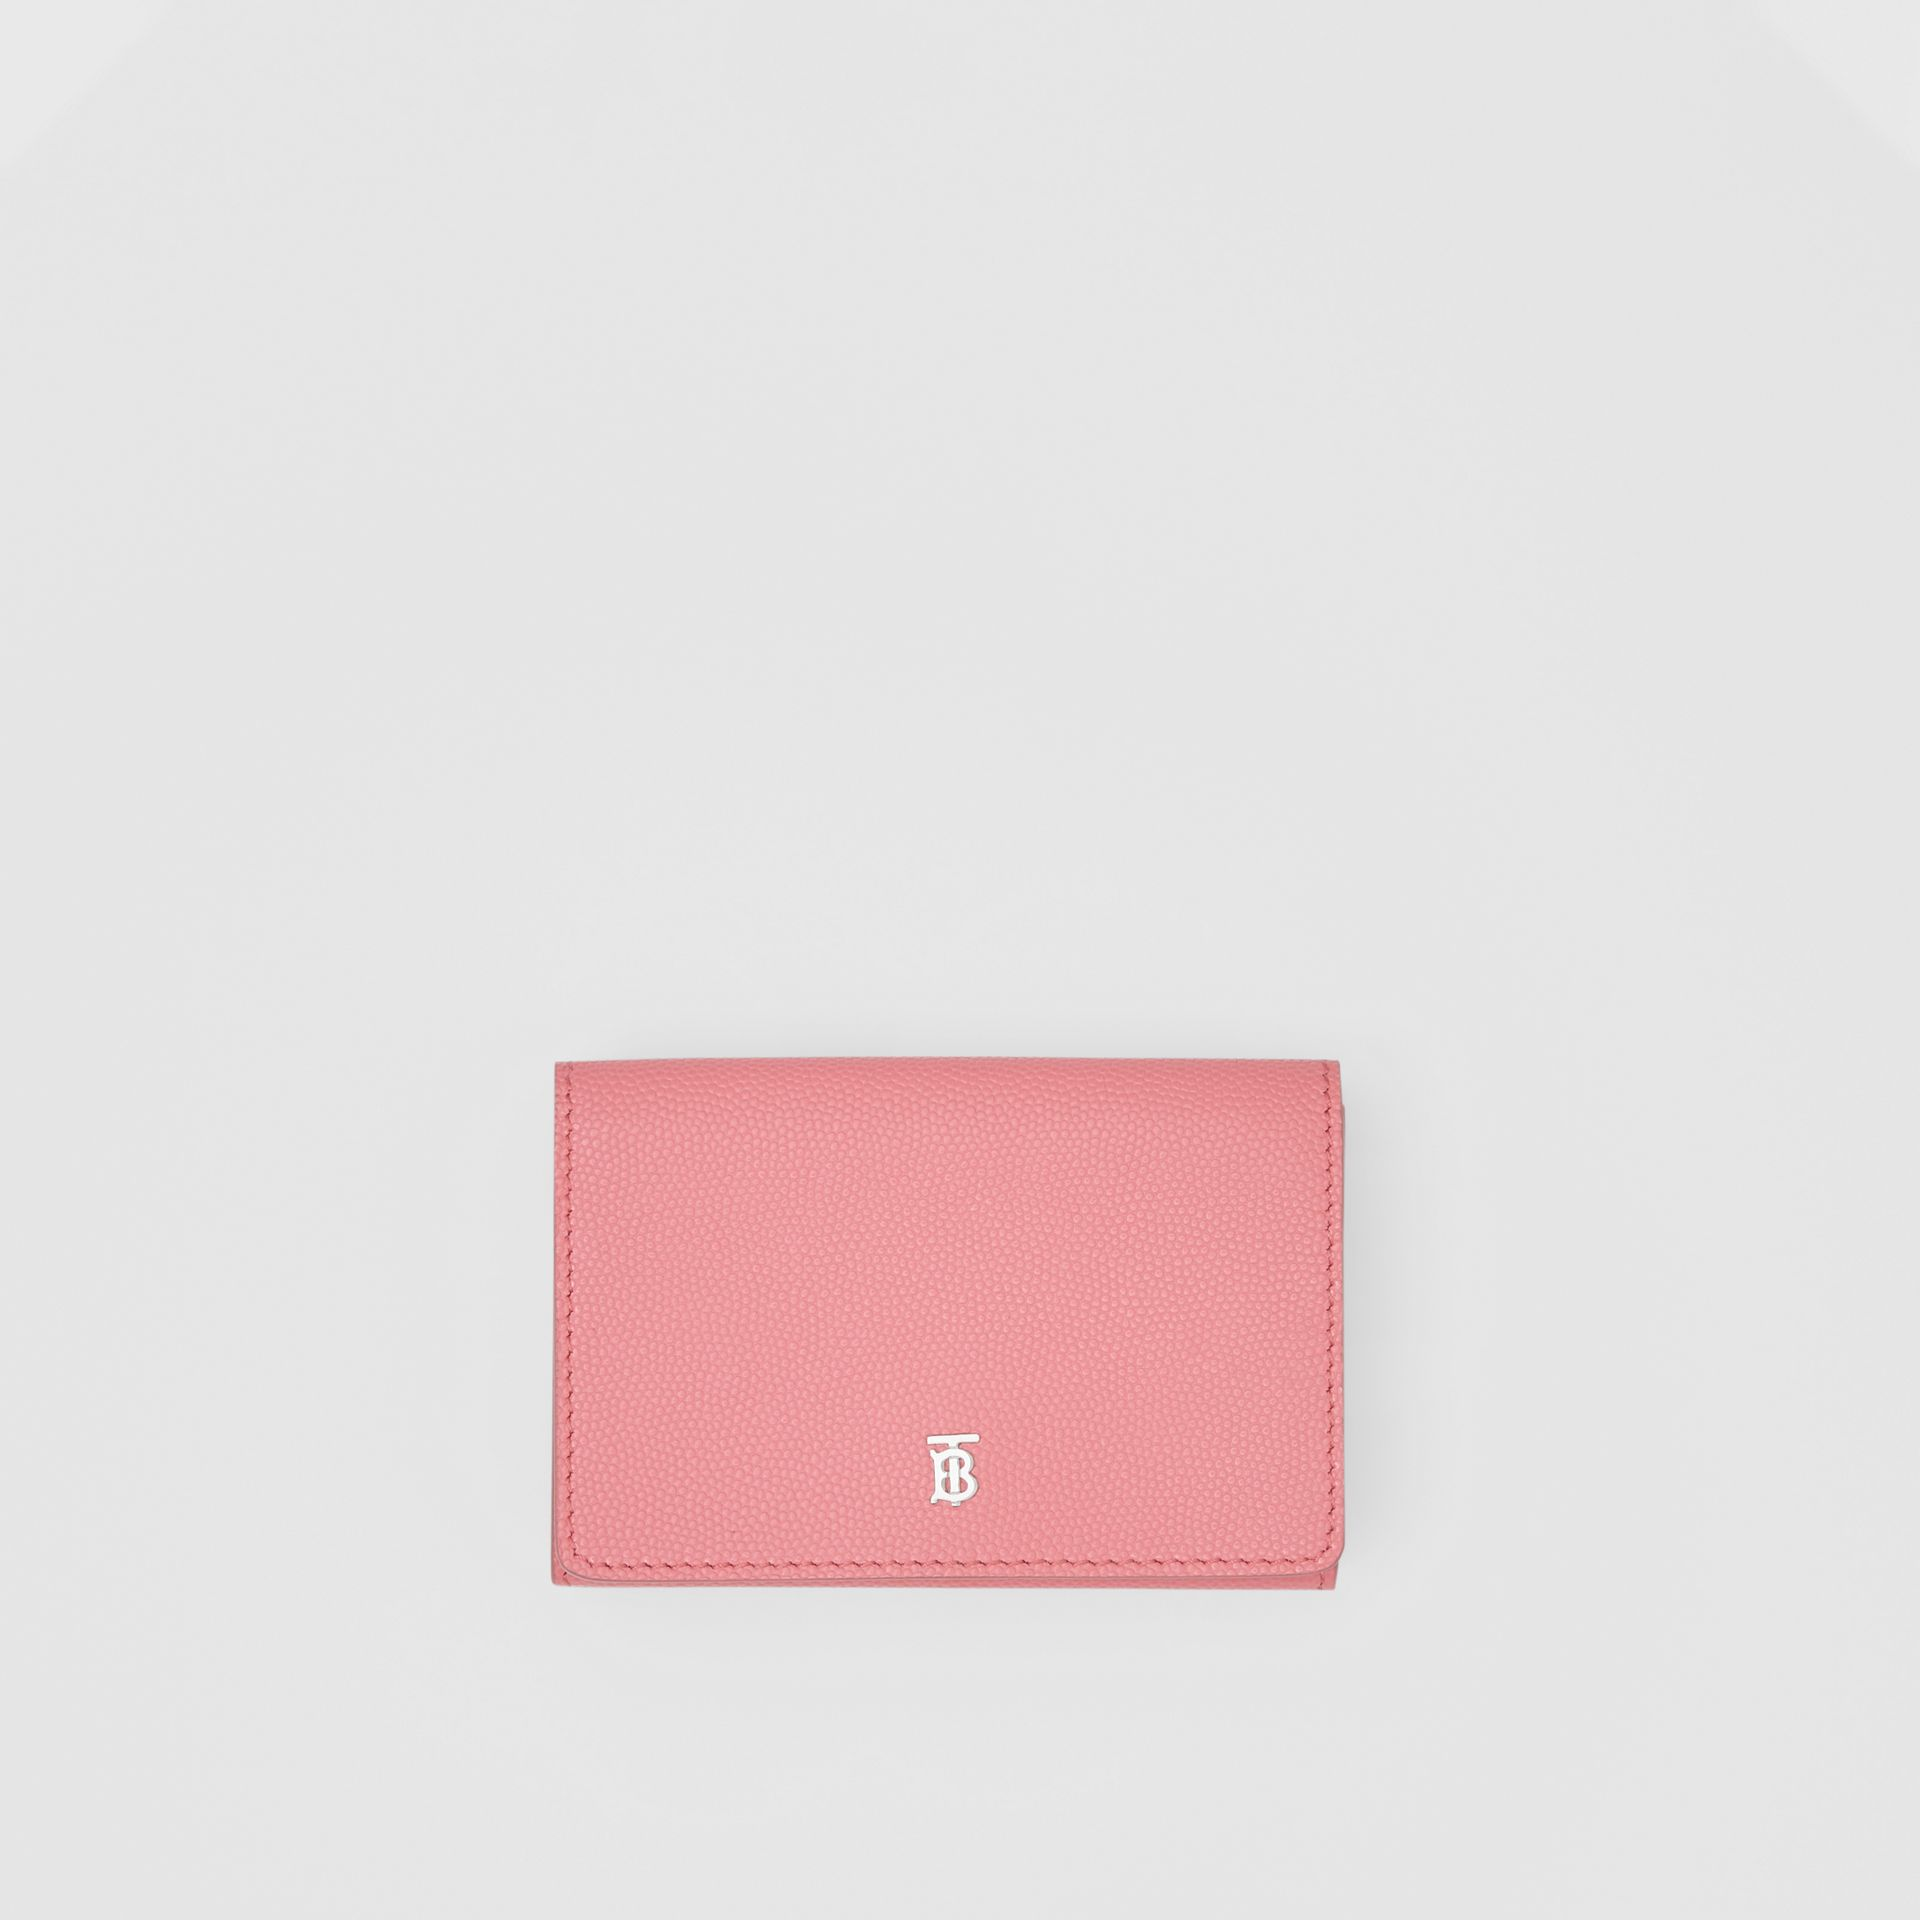 Small Grainy Leather Folding Wallet in Candy Floss/palladio - Women | Burberry United Kingdom - gallery image 0